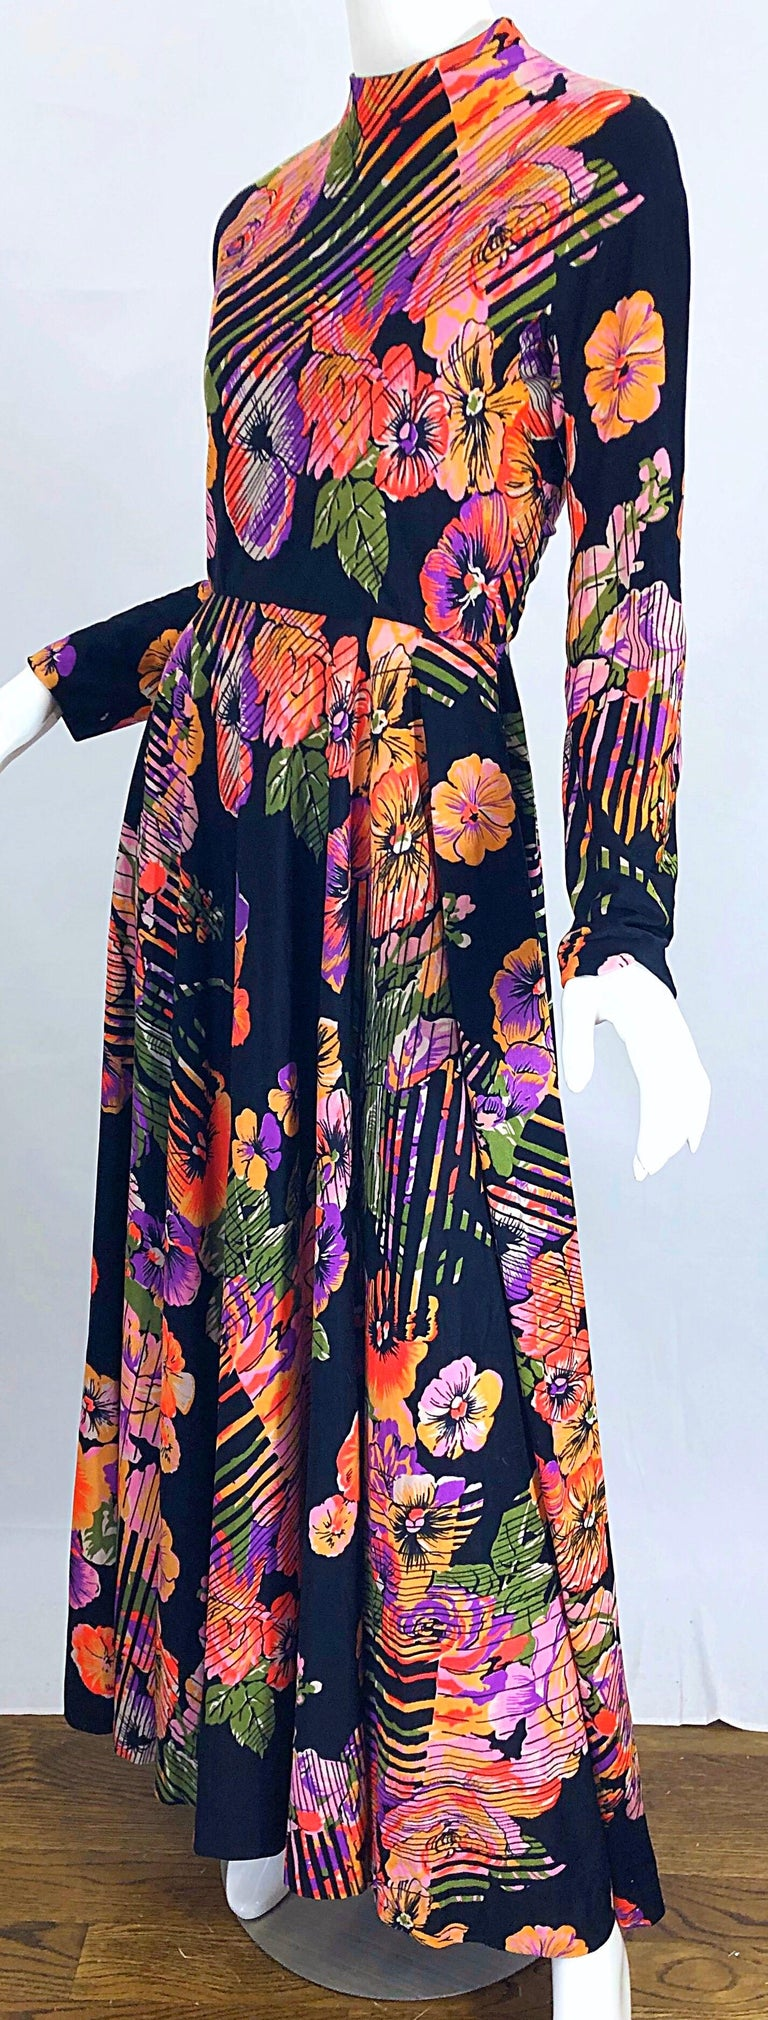 Geoffrey Beene 1970s Abstract Flower Print Long Sleeve High Neck 70s Maxi Dress For Sale 8